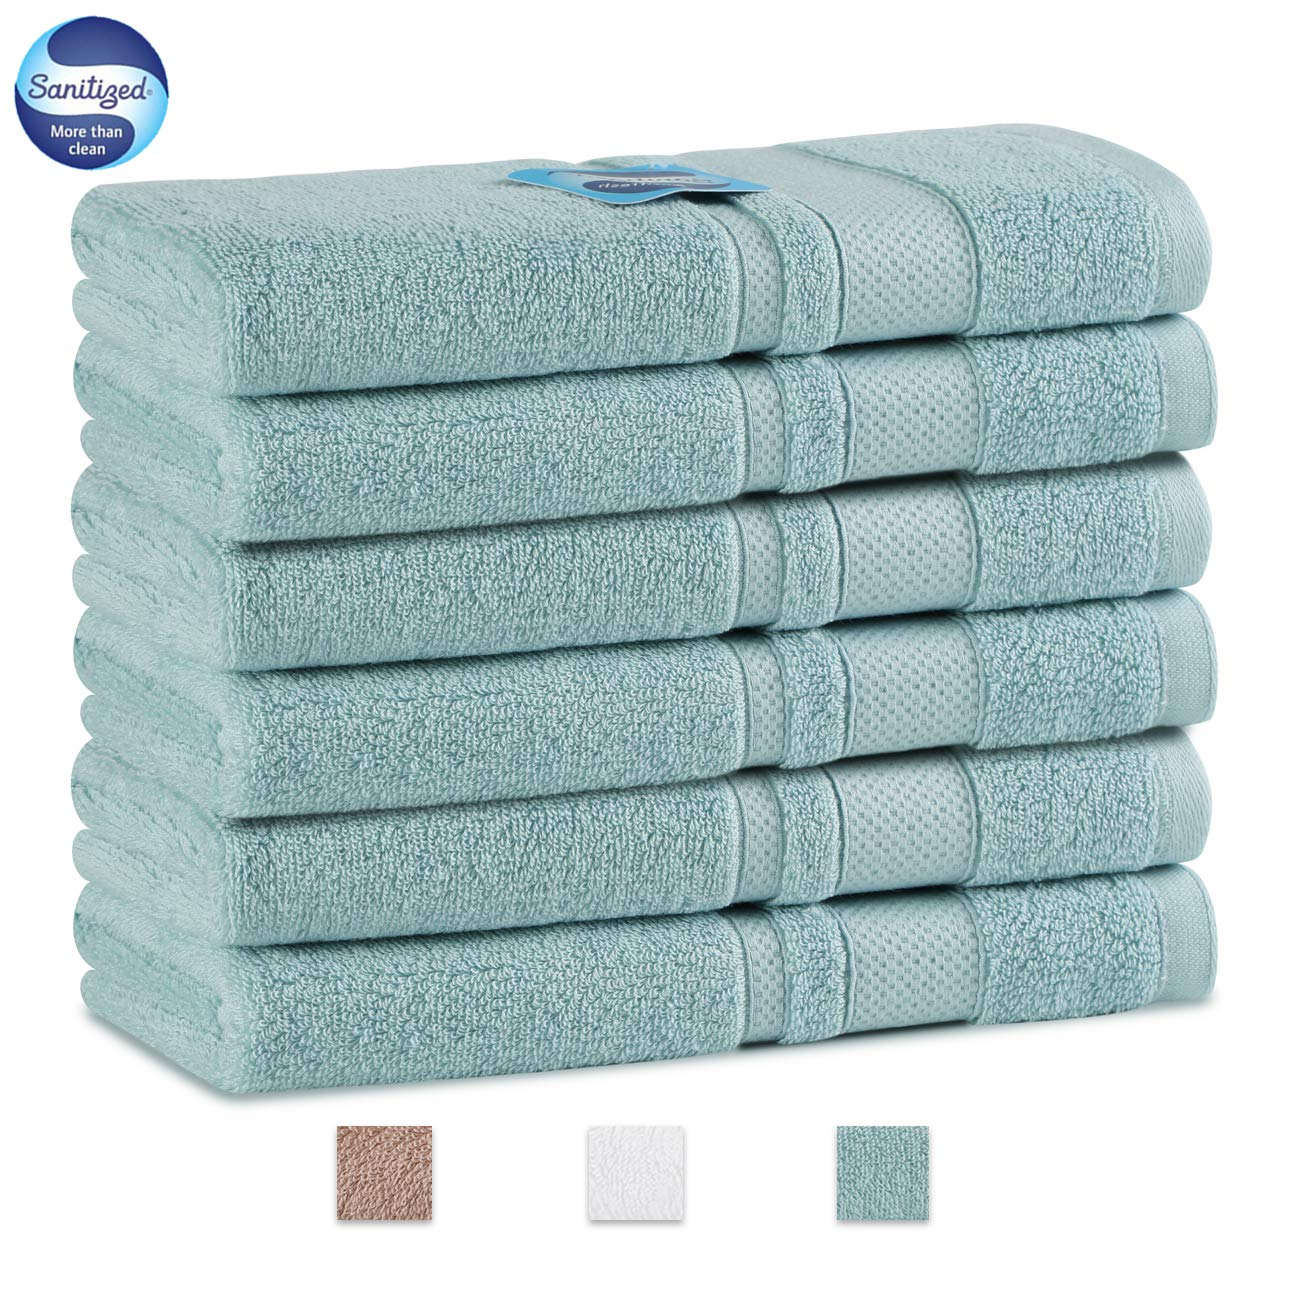 GRACE ORCHID Luxury 6 Piece Hand Towel Set 29 x 14 Inch -100% Long Staple Cotton Super Soft, Machine Washable,Ultra Absorbent Towels for Bathroom, Hotel and Spa (Light Blue)